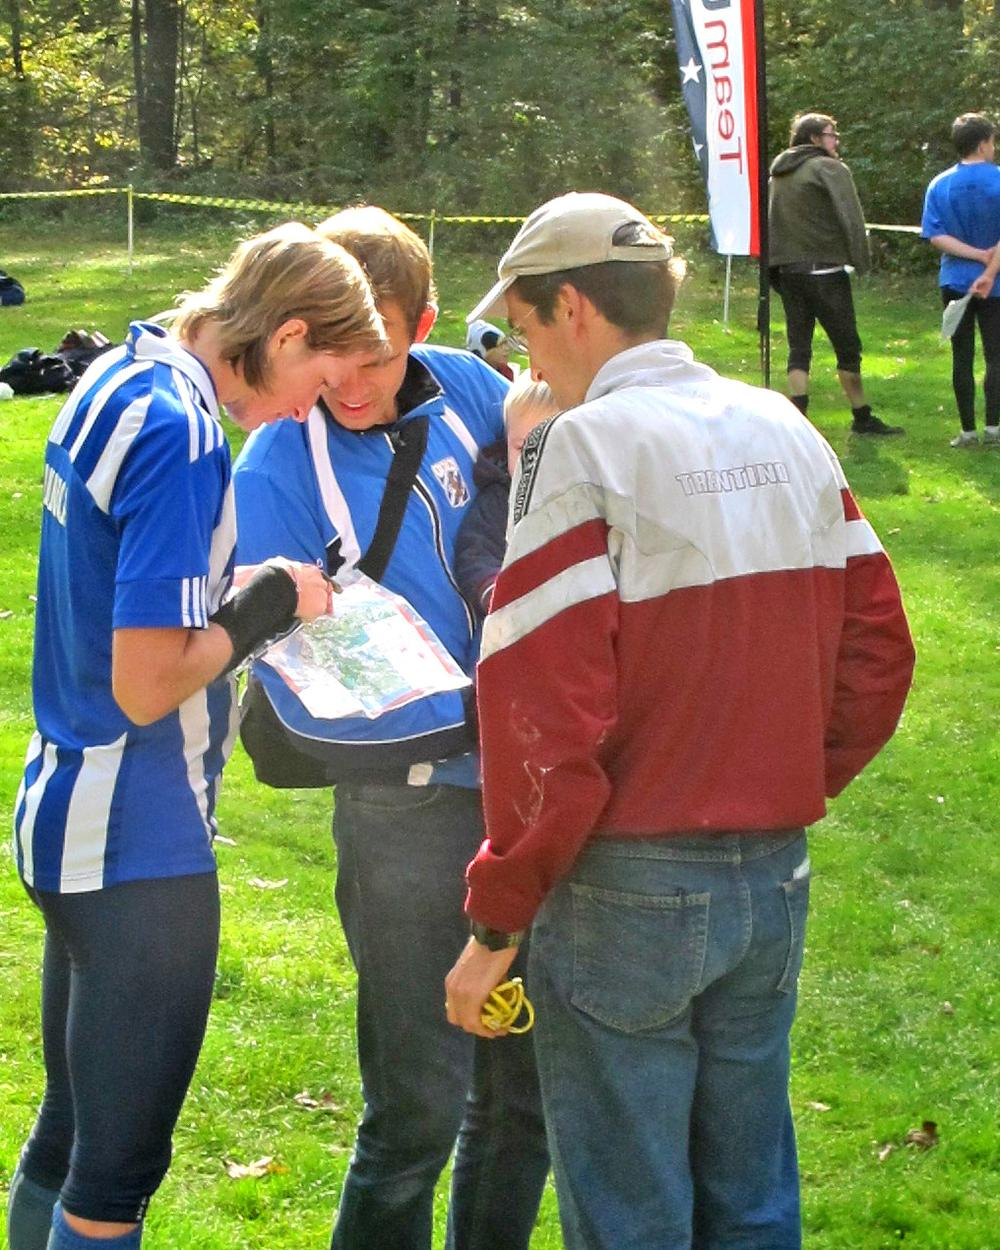 Annica Eng (l) and her husband Jakob (c) traveled from Sweden for the event. Orienteering is more popular in Europe than in the U.S. (Doug Tribou/Only A Game)